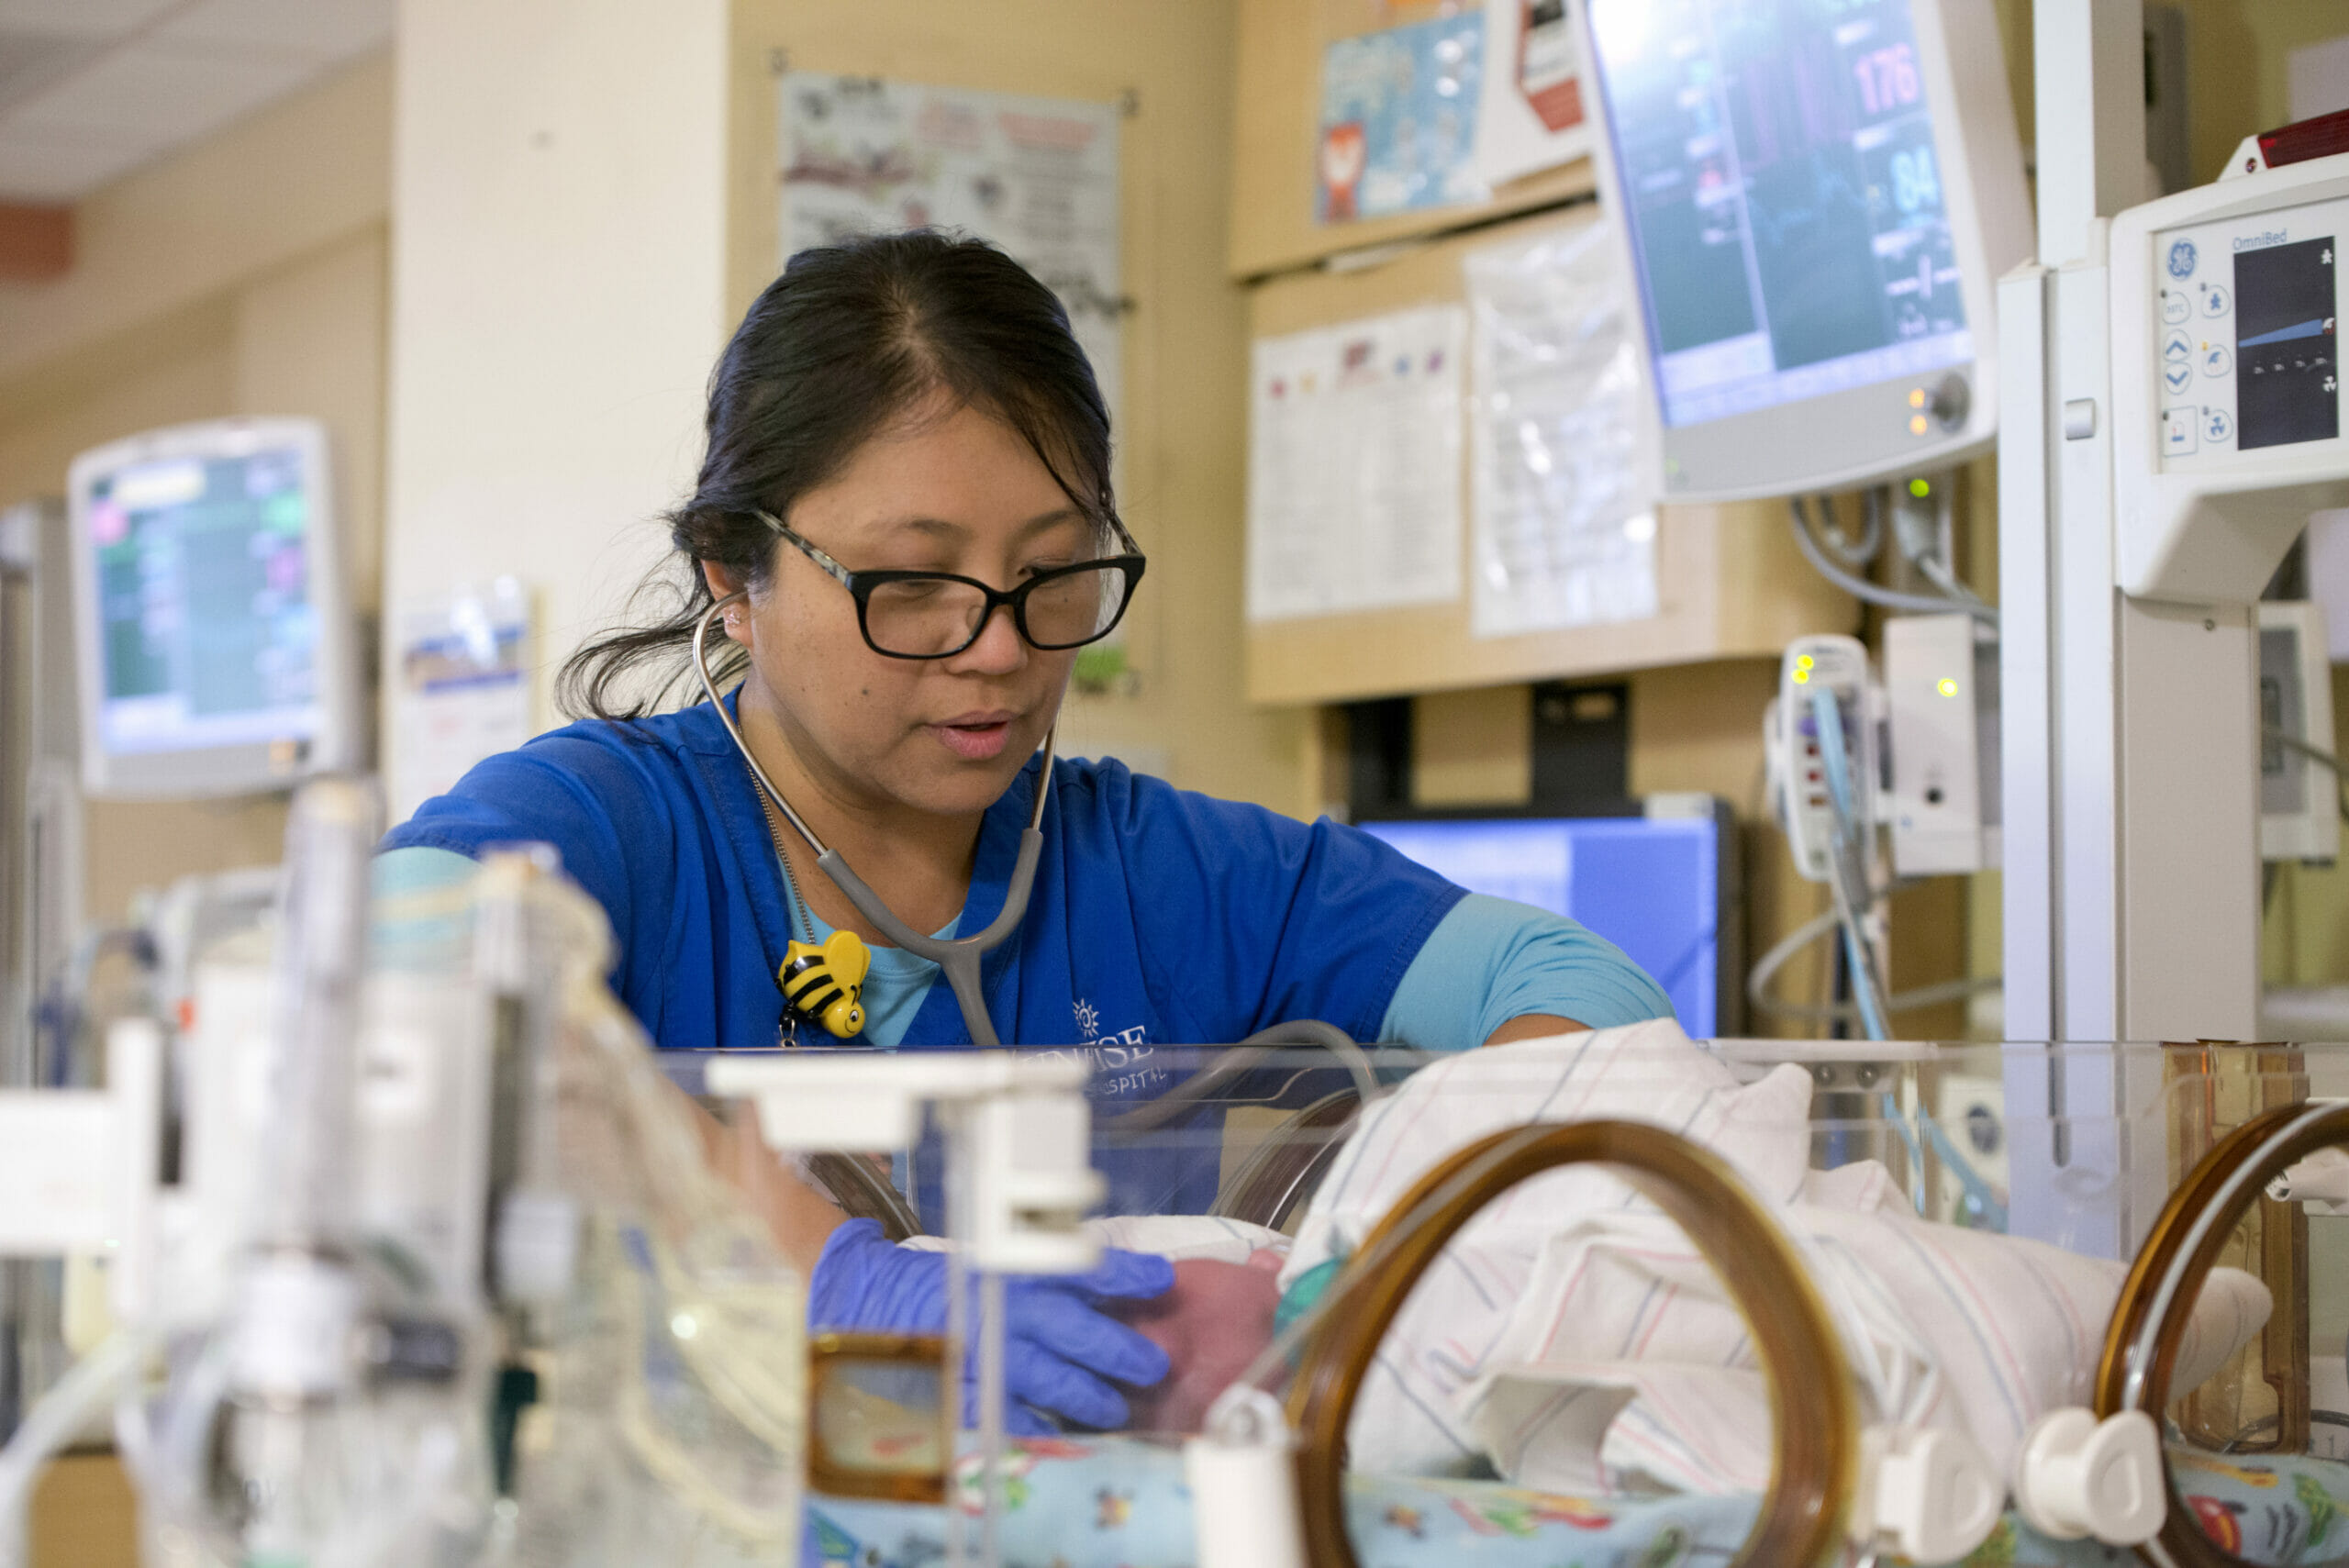 photo of a nurse in blue scrubs leaning over a basinnet